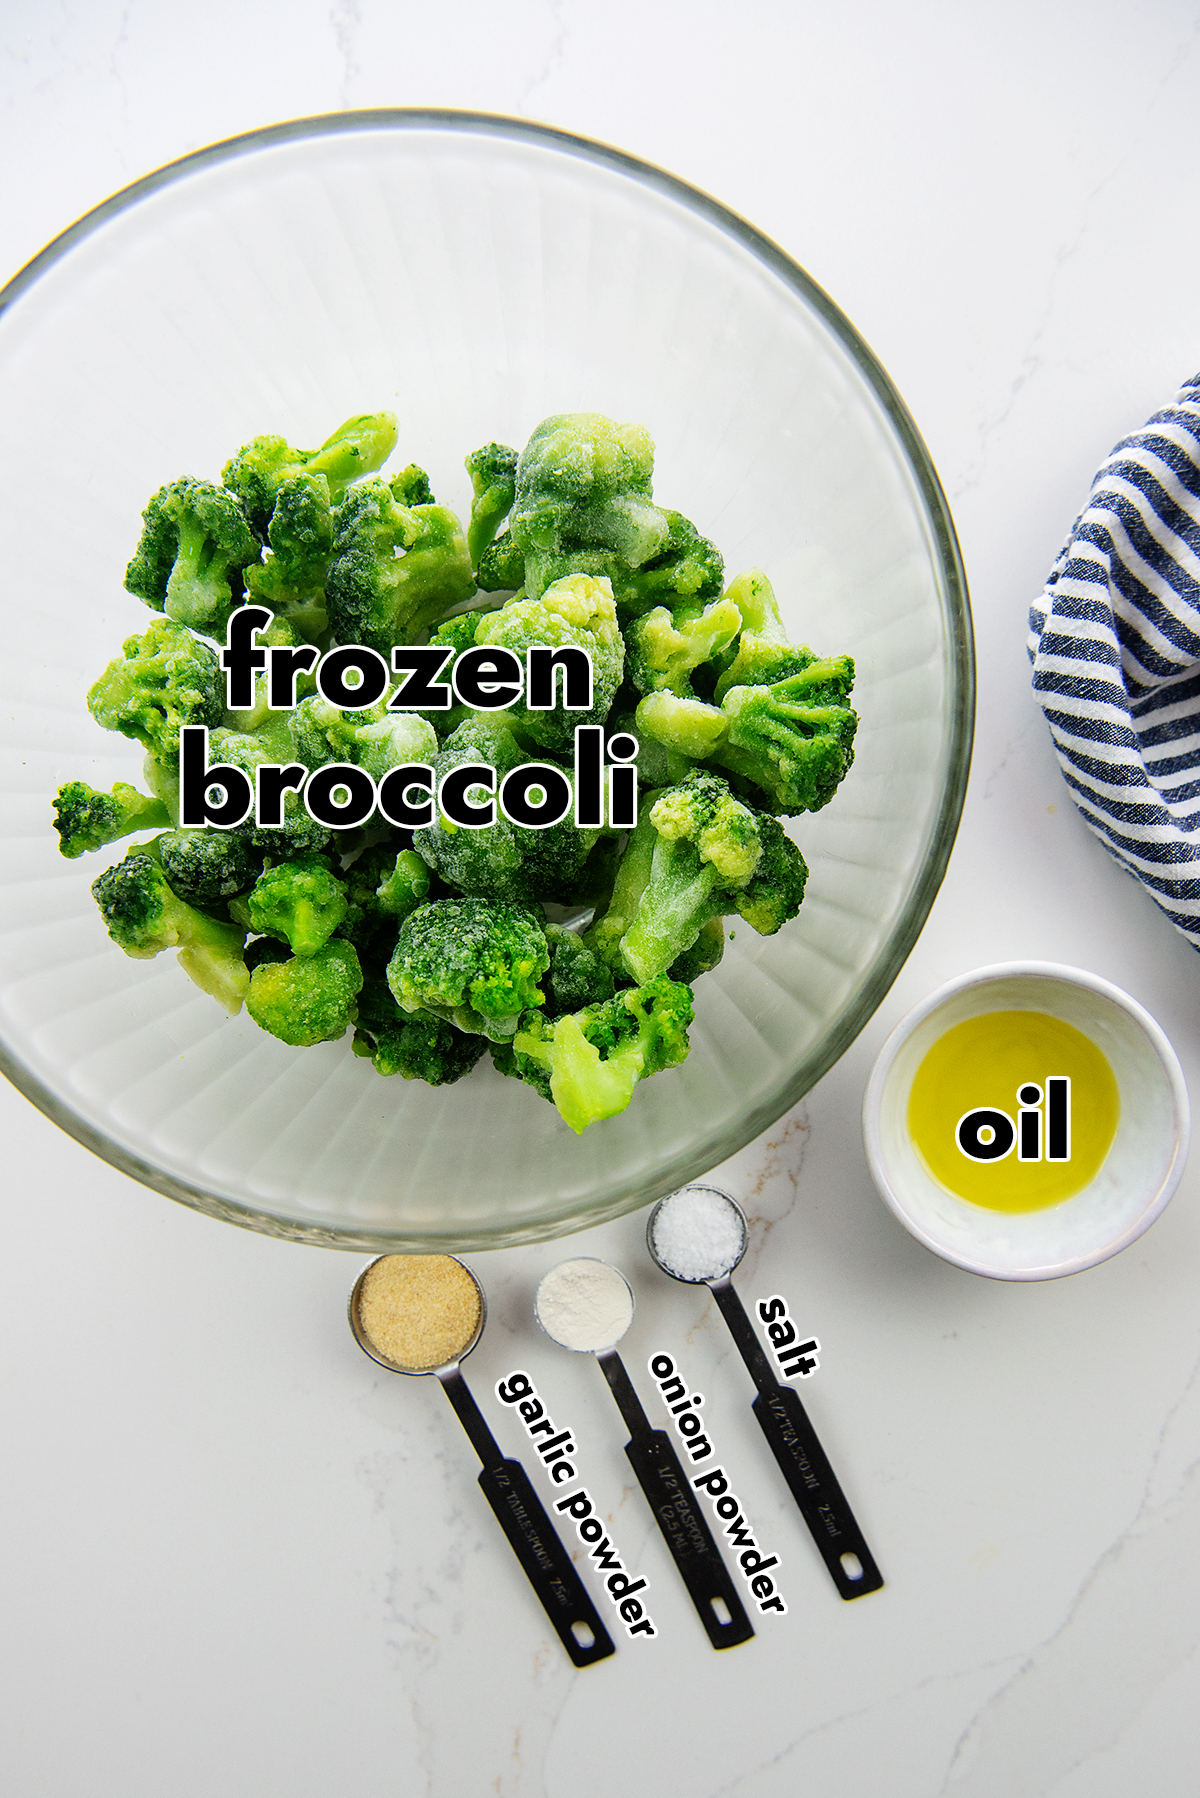 ingredients spread out for cooking broccoli